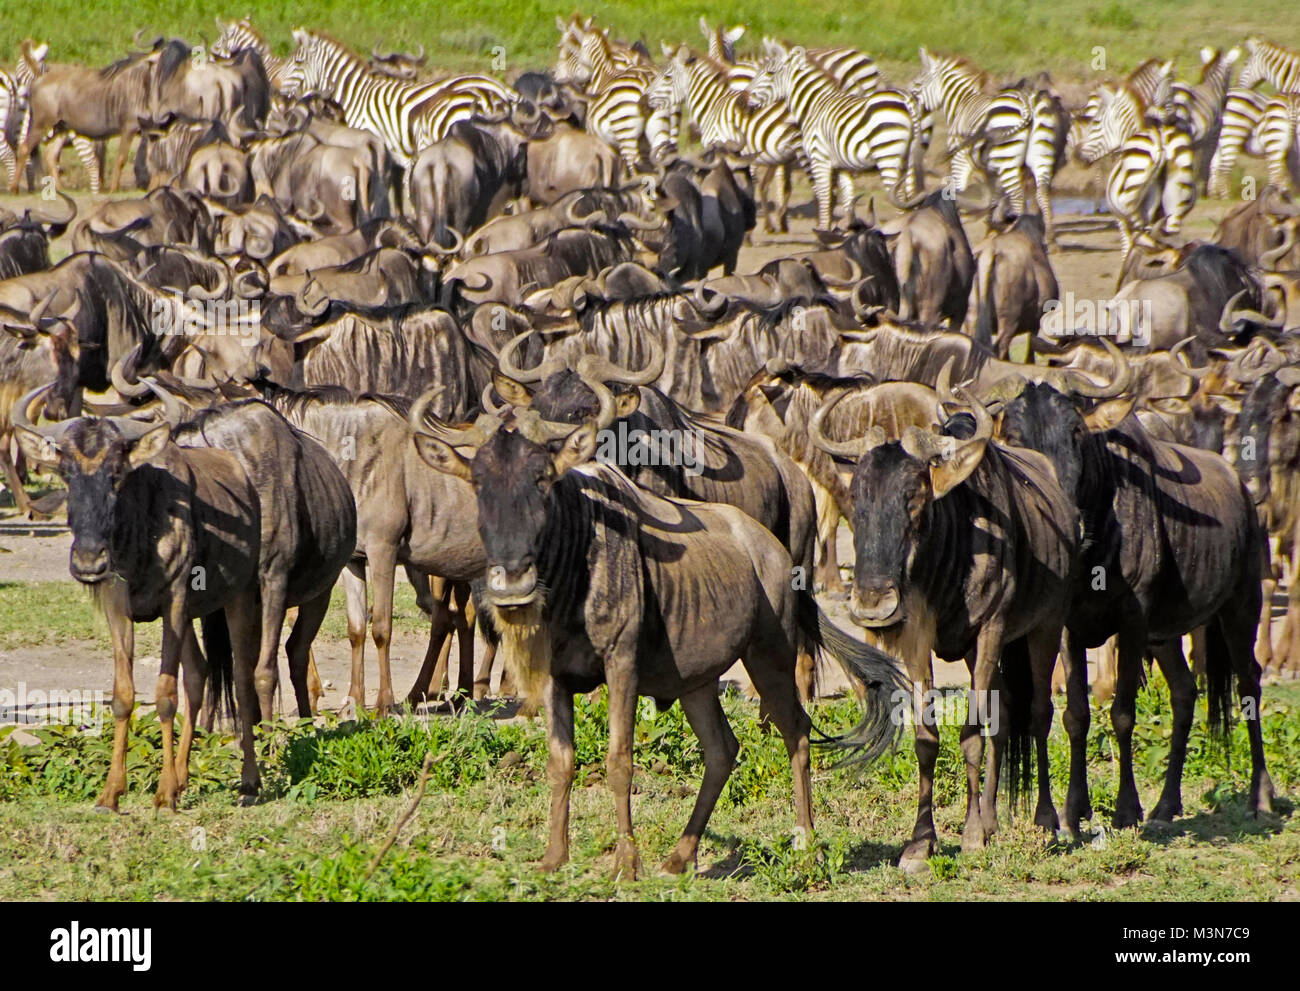 Herds of wildebeest and zebra waiting to begin Great Migration on Serengeti Plains of Tanzania. - Stock Image